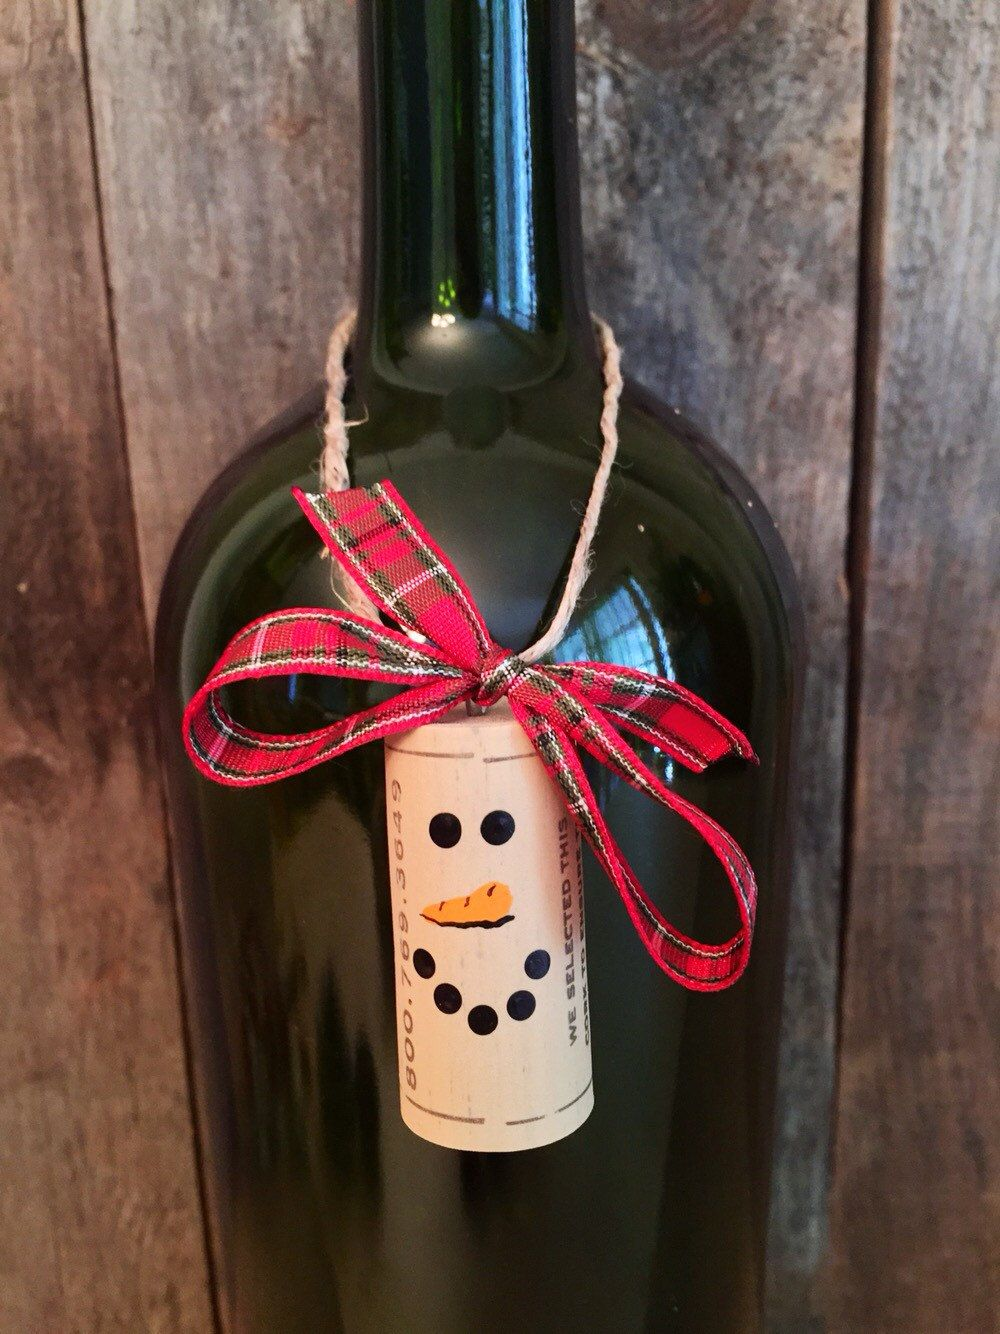 Set Of 6 Adorable Wine Cork Snowman Ornaments These Recycled Wine Cork Ornaments Have So Many Uses Here Are Wine Cork Ornaments Wine Cork Crafts Cork Crafts